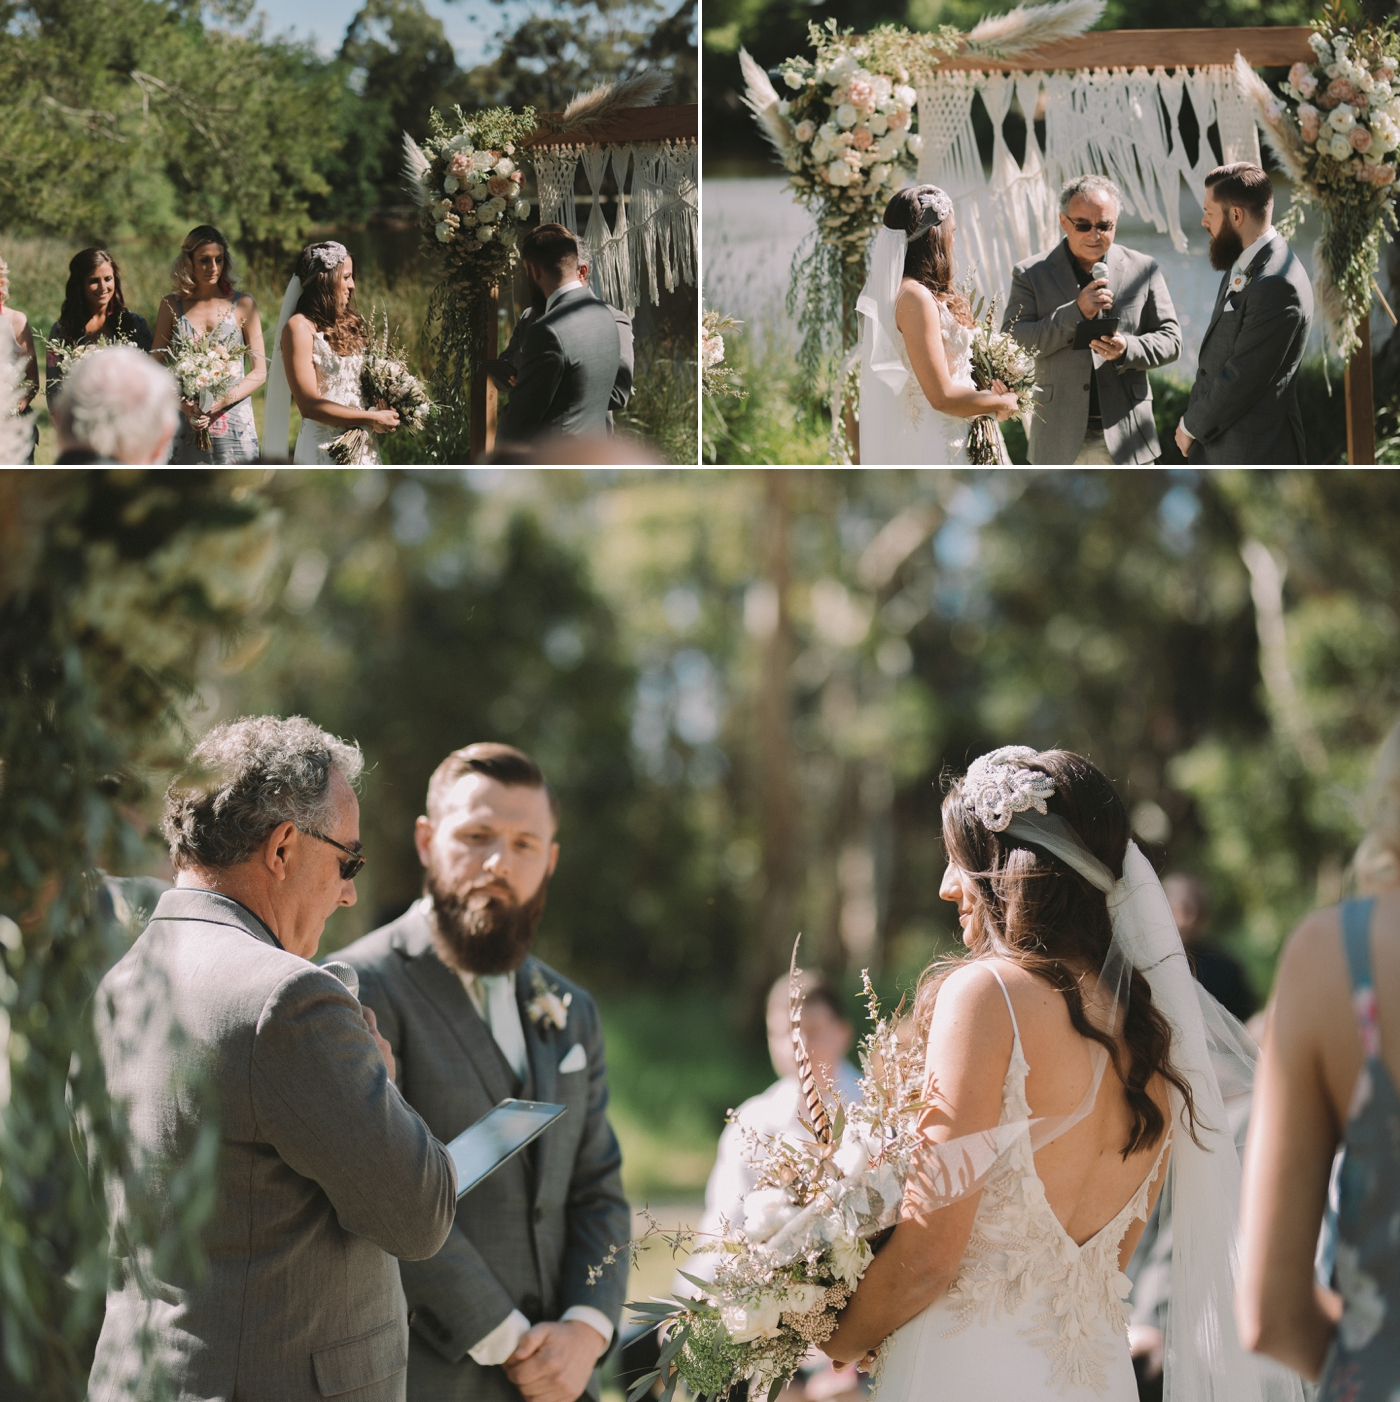 Maddy & Wes - K1 by Geoff Hardy Wedding - Adelaide Wedding Photographer - Natural wedding photography in Adelaide - Katherine Schultz_0027.jpg